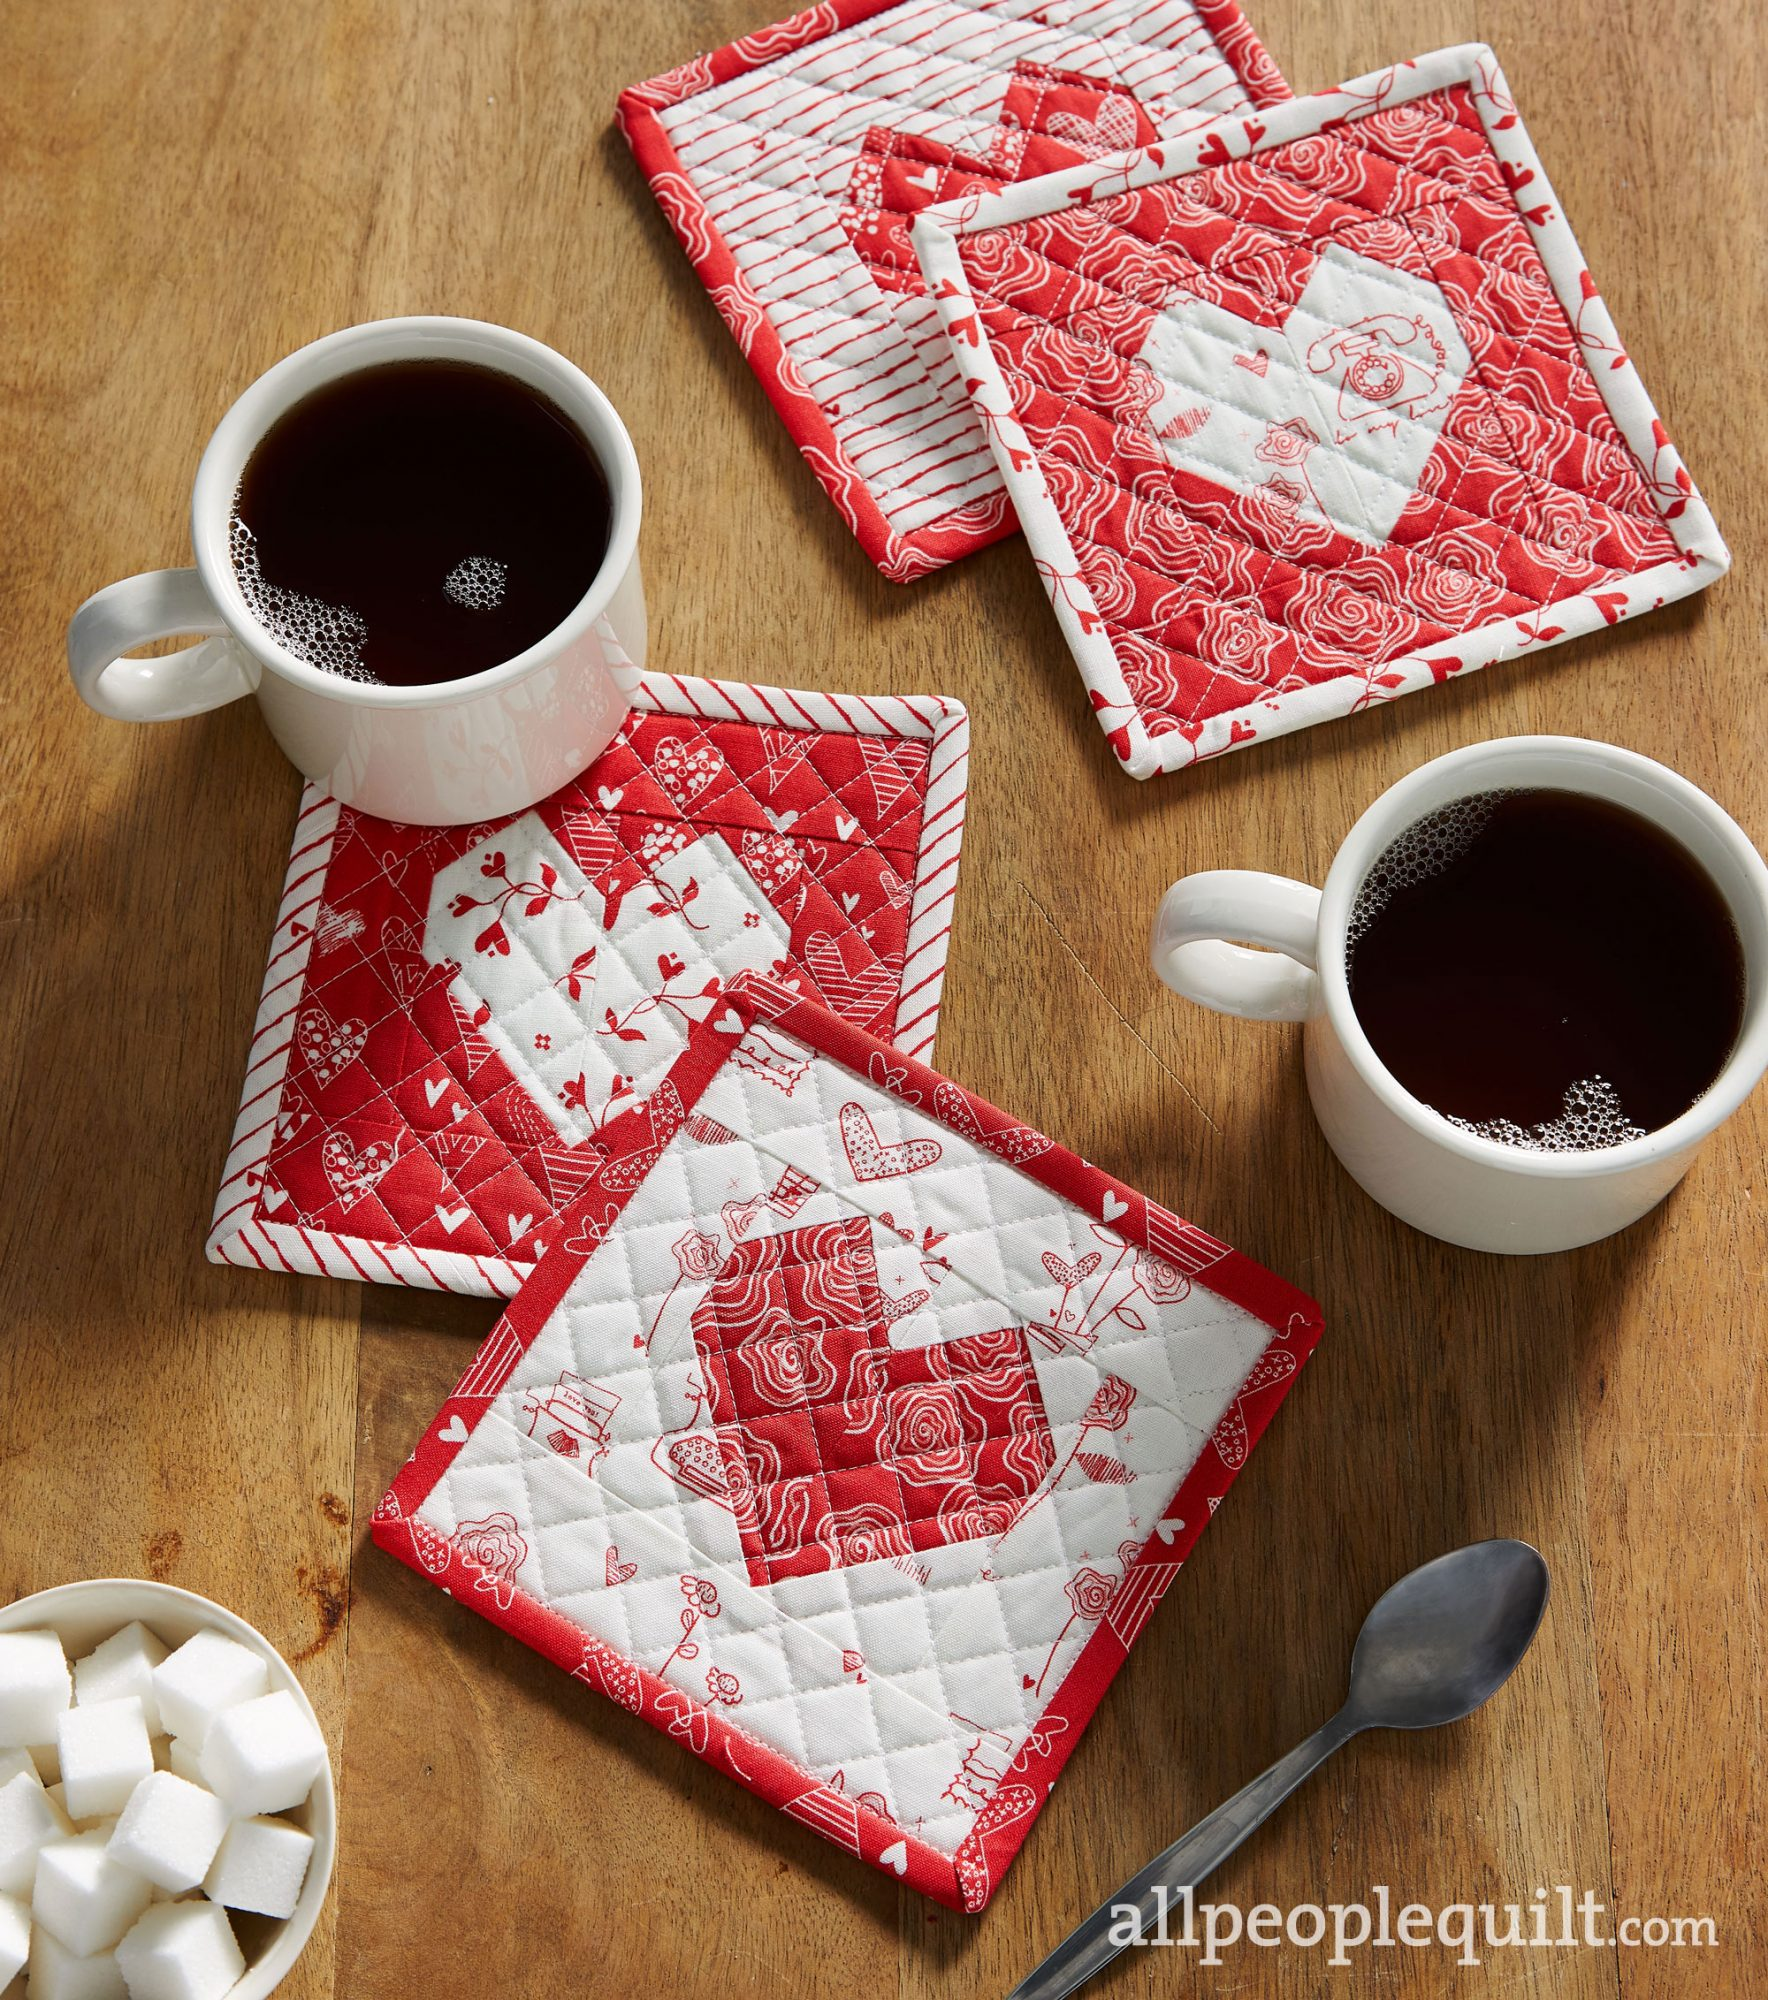 Place in My Heart Coasters